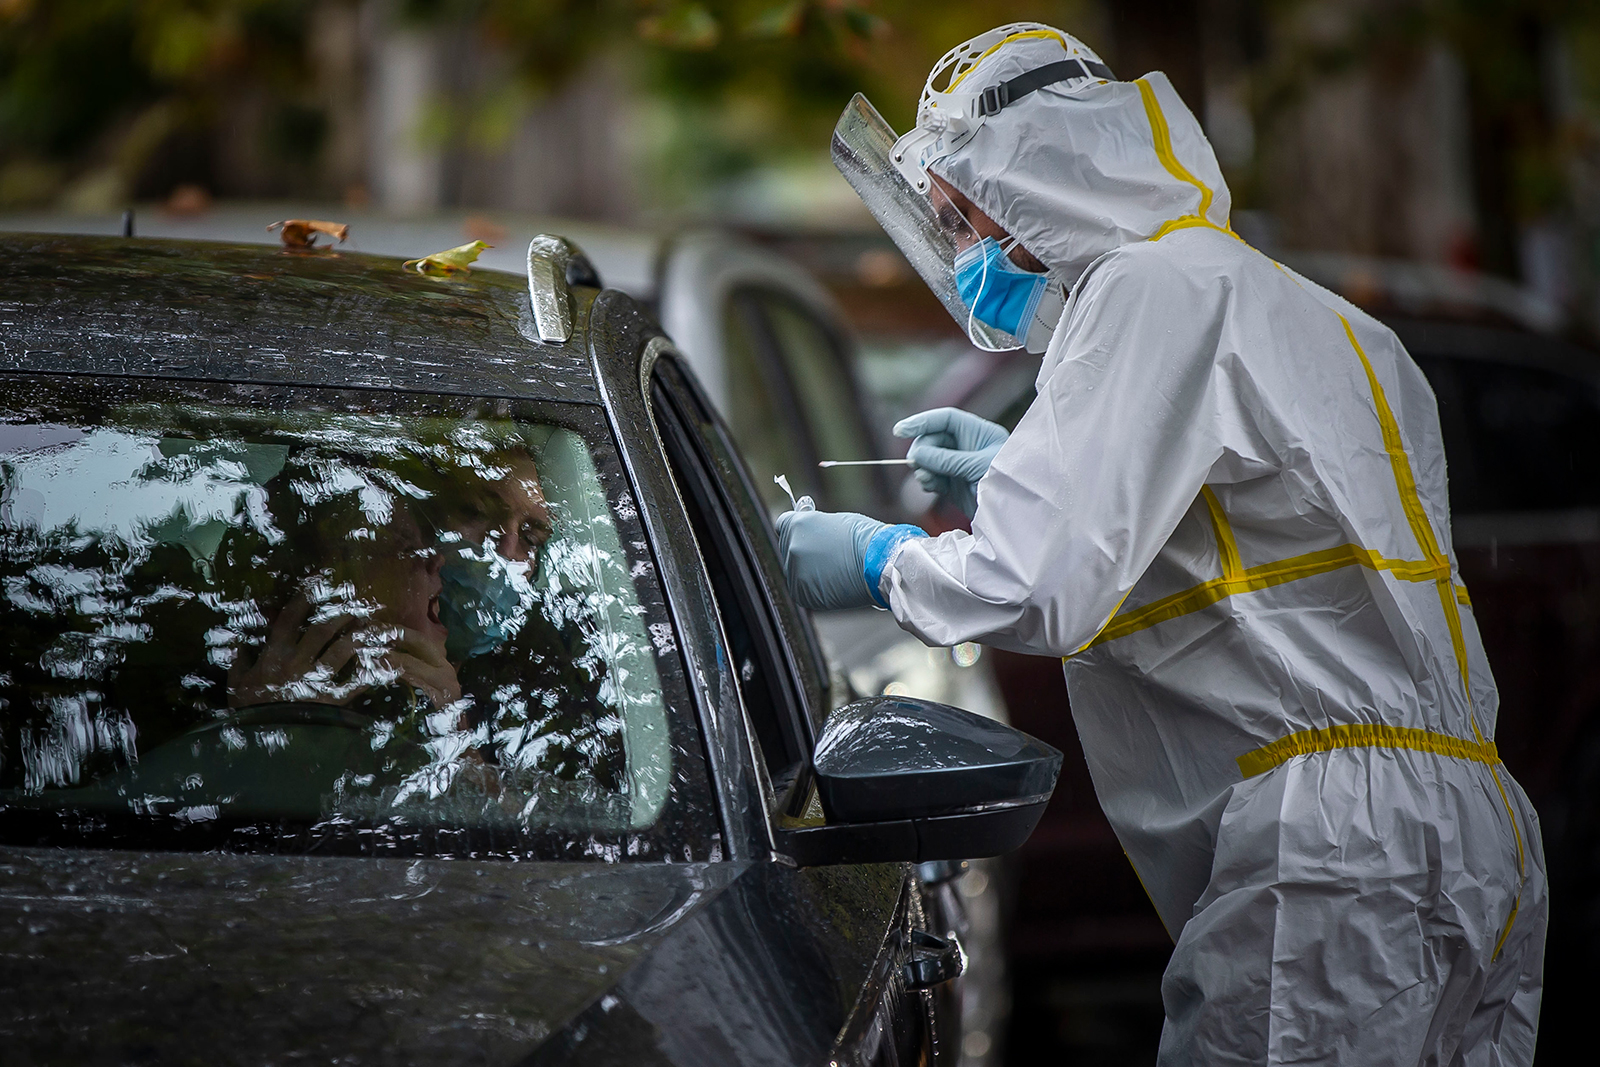 A healthcare worker conducts a Covid-19 test at a drive-in testing station in Prague, Czech Republic, on October 10.